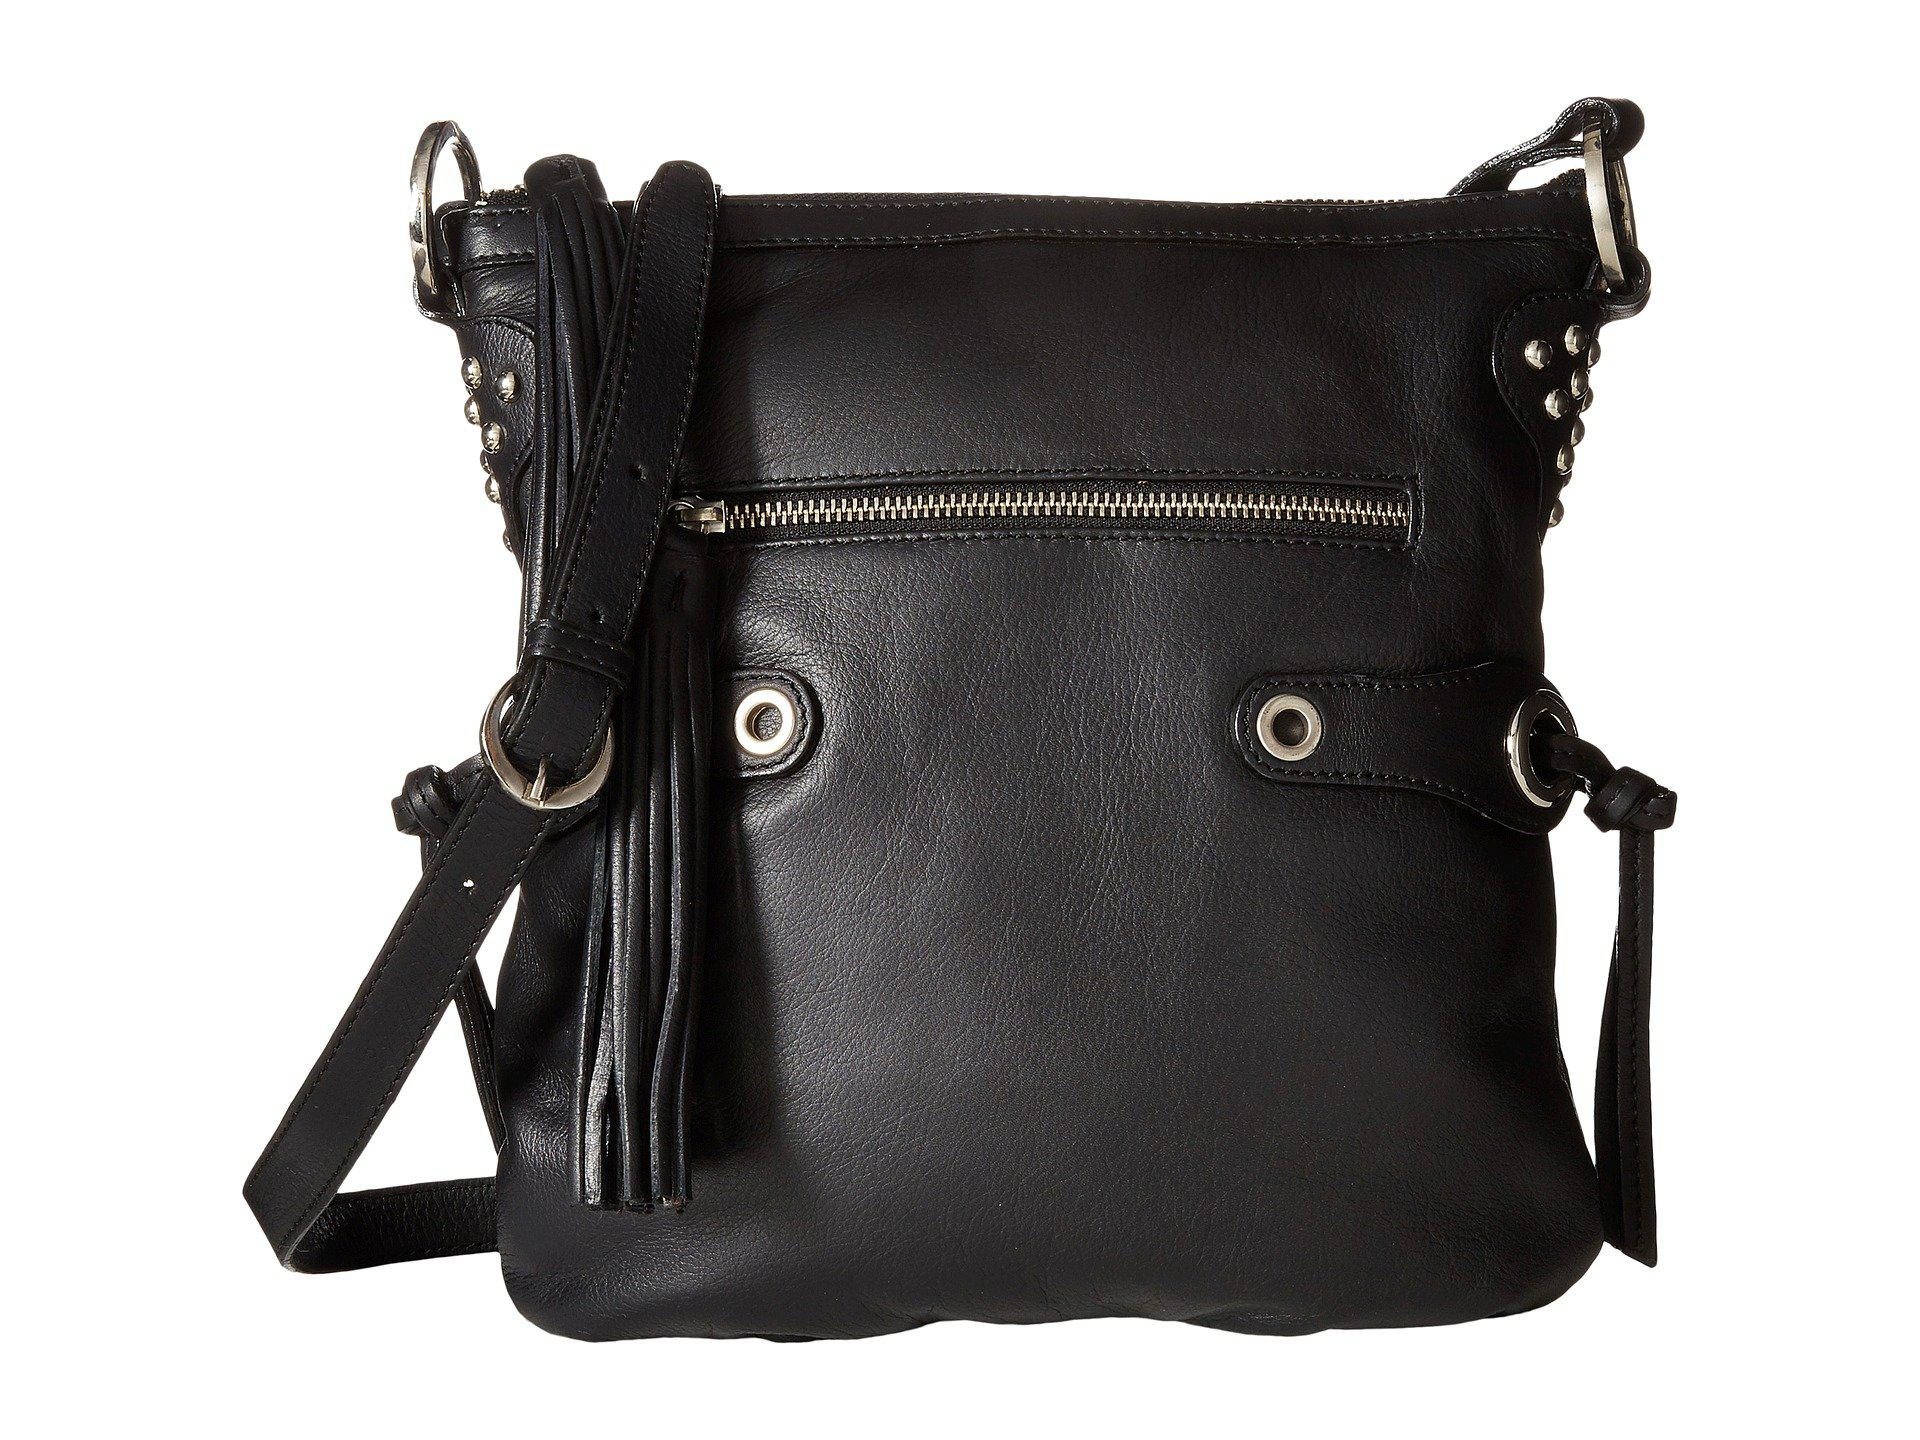 691568a25834 Lyst - Scully Solange Bag (black) Bags in Black